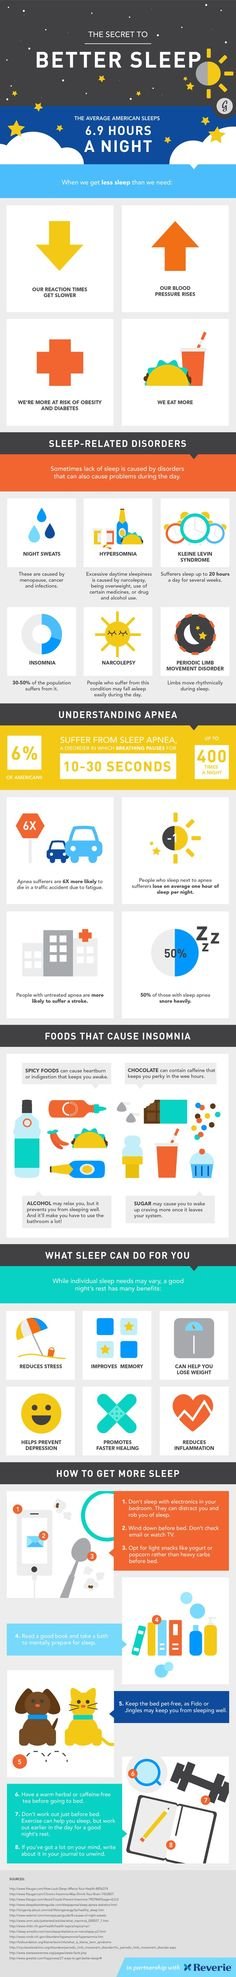 Everything You Need to Know About Sleep in One Simple Infographic #sleep #rest #relax